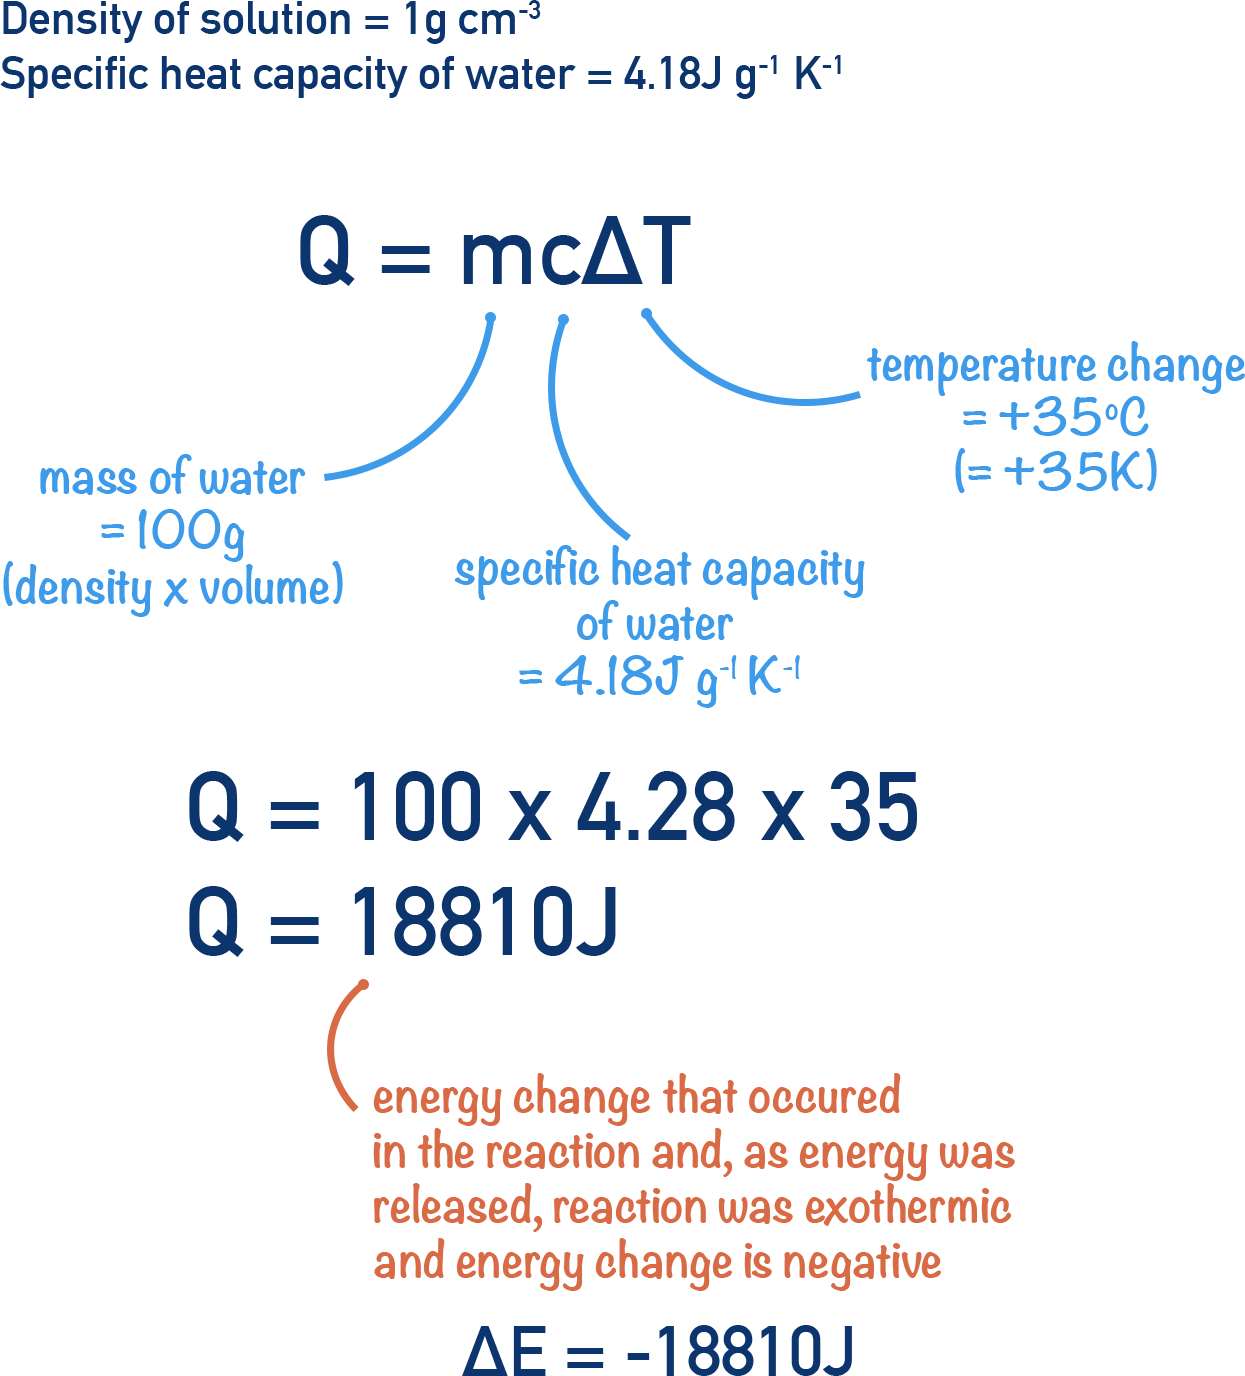 using specific heat capacity to find energy change